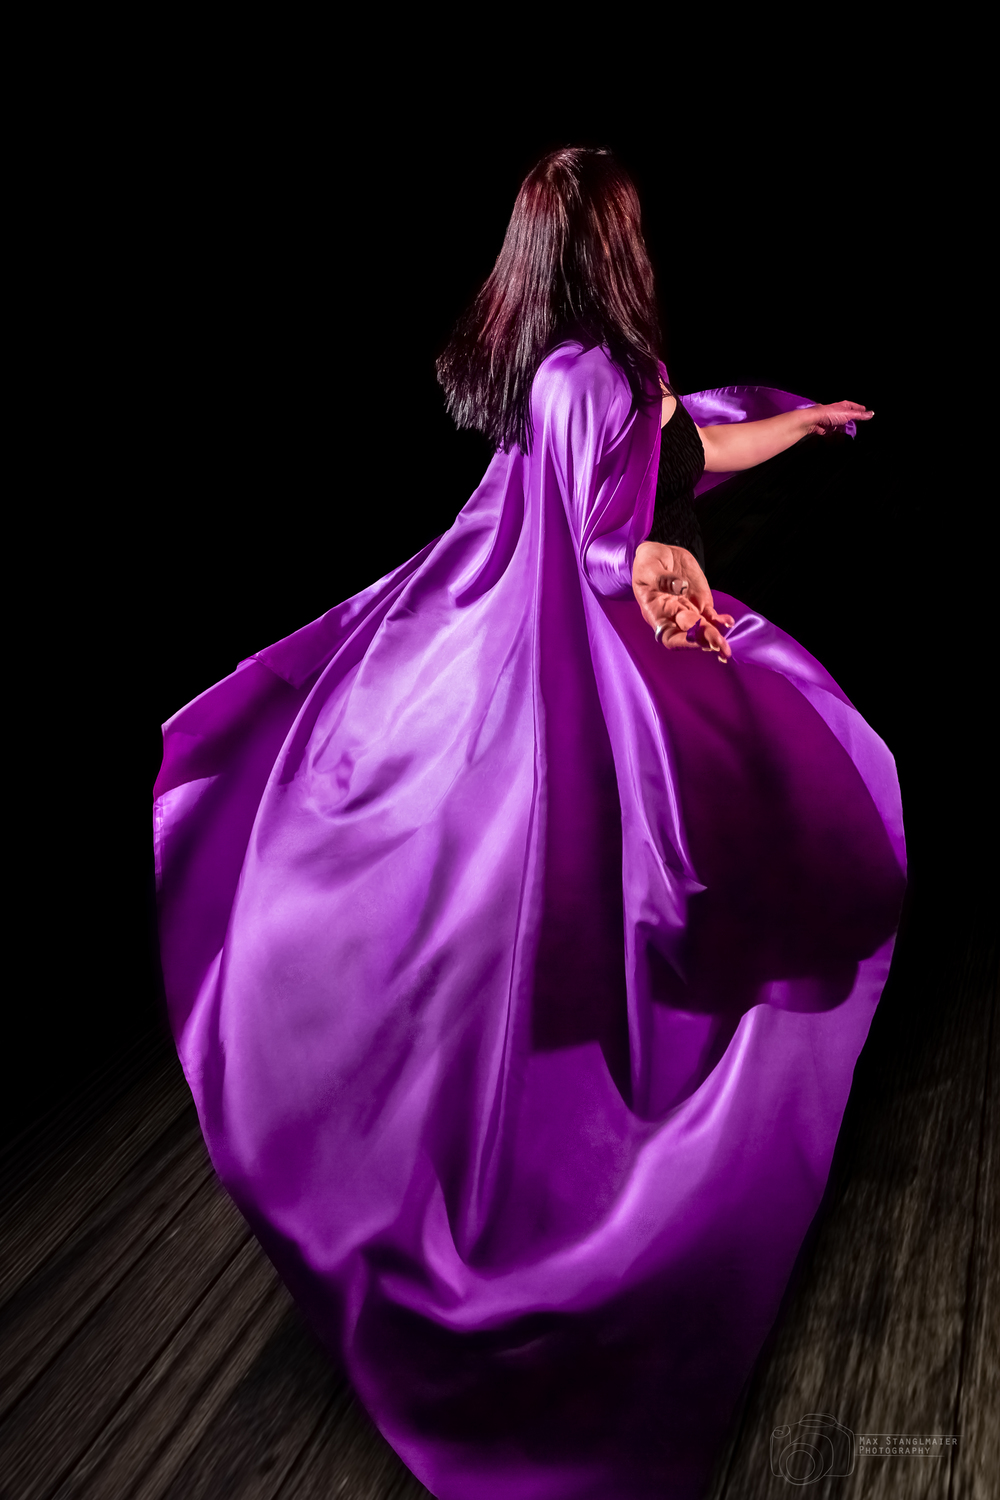 purple satin dress.jpg